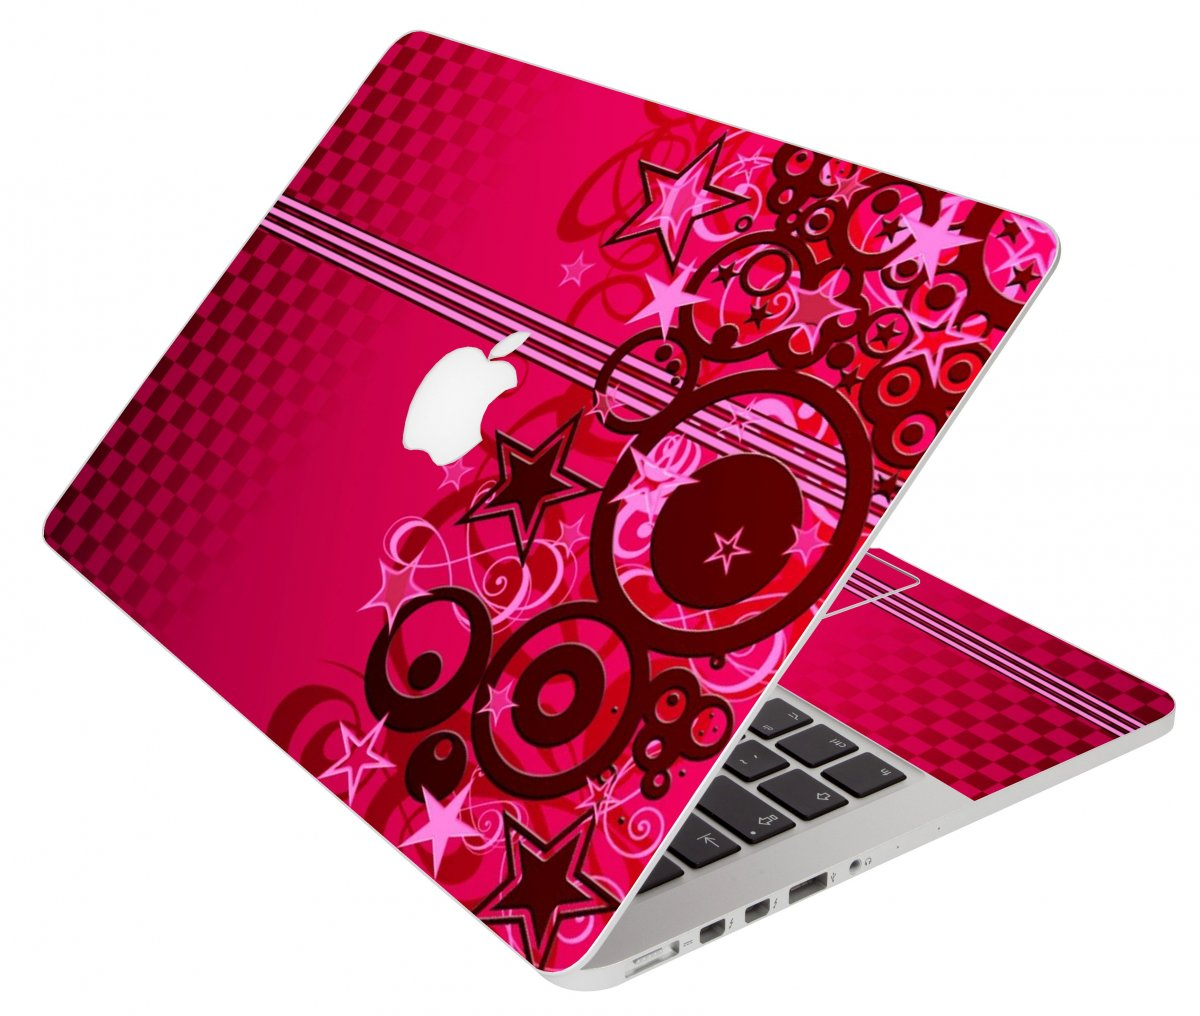 Pink Grunge Stars Apple Macbook Pro 17 A1297 Laptop  Skin